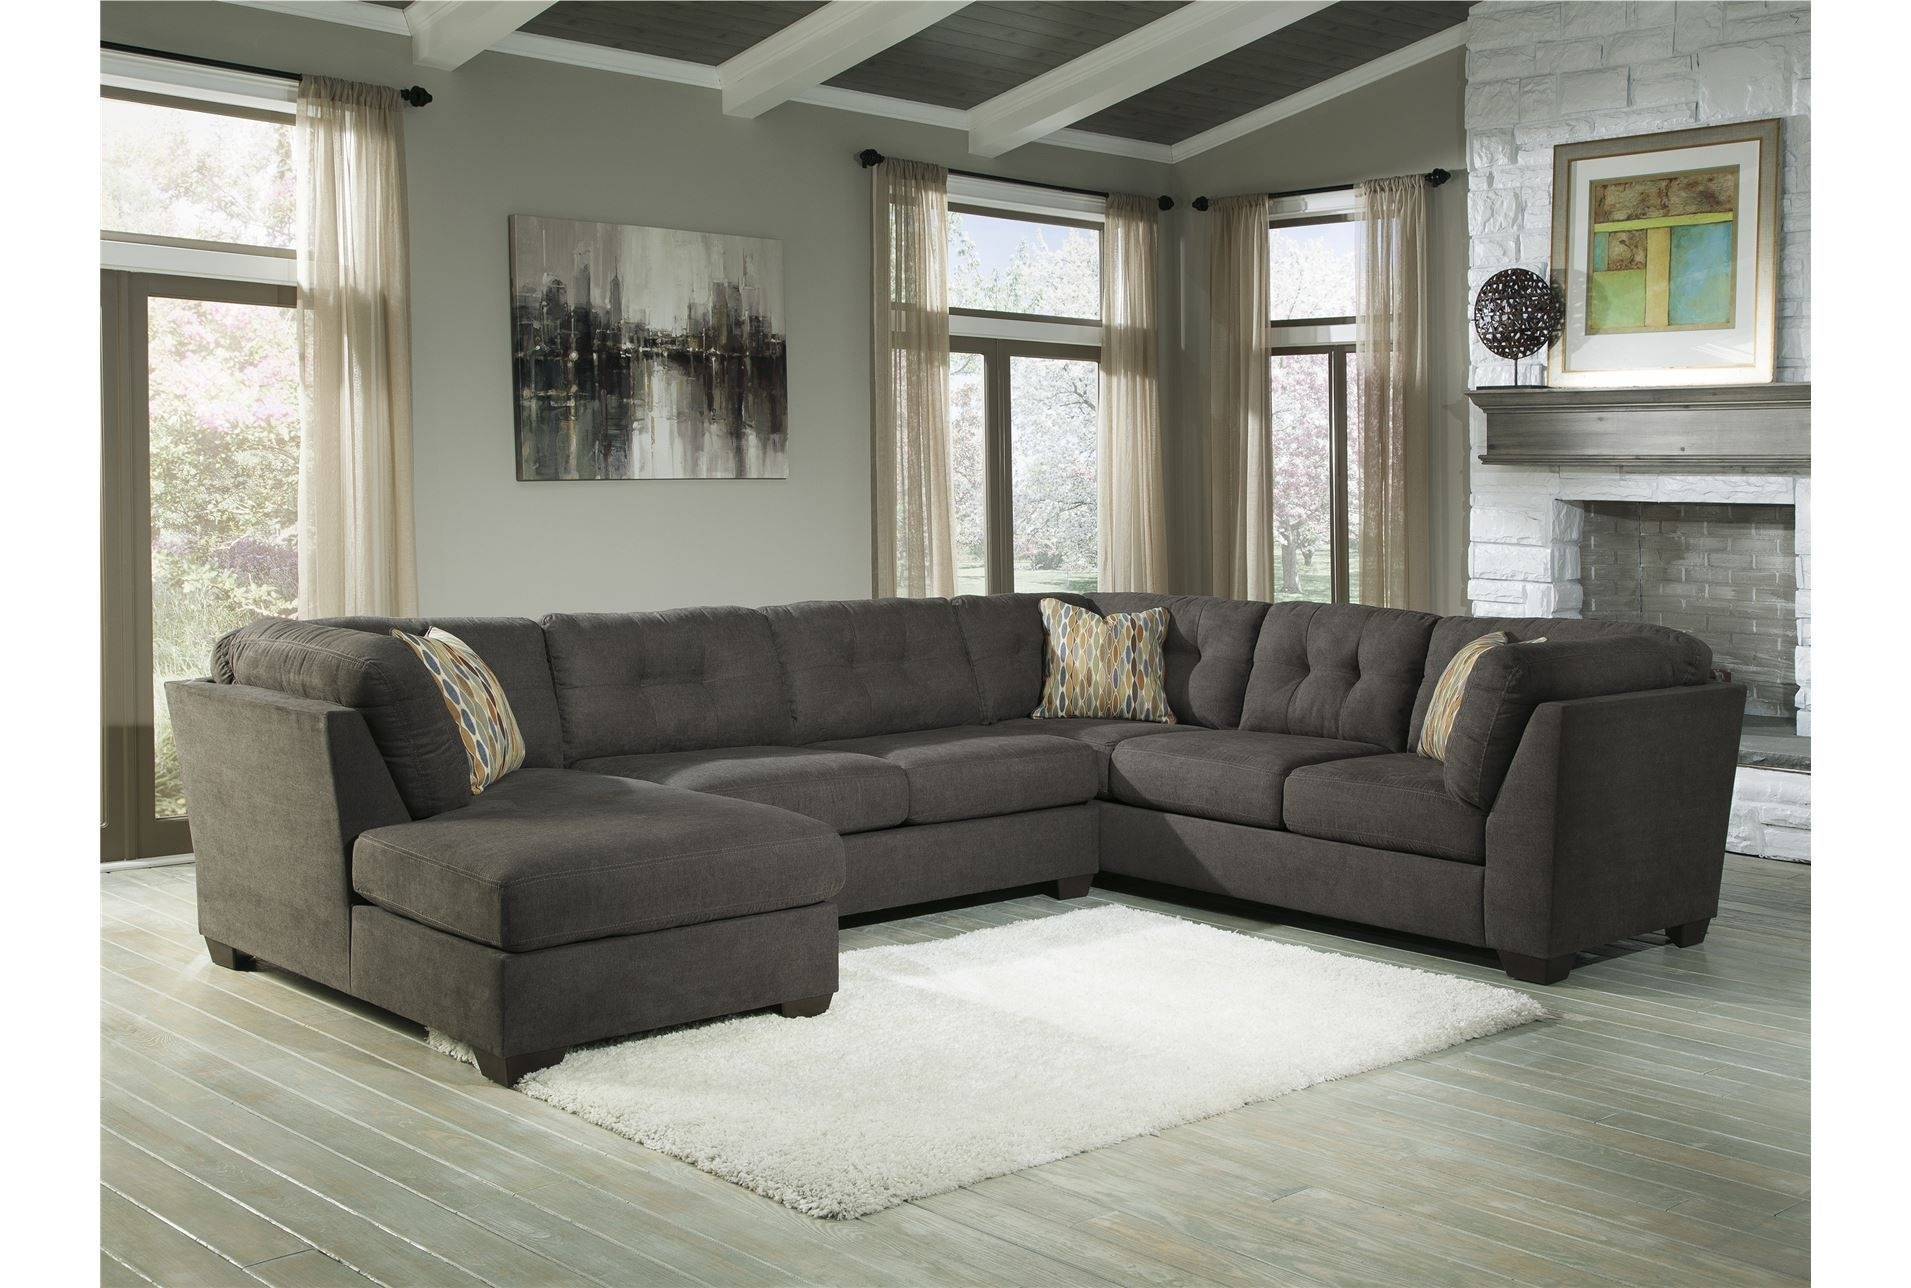 Delta City Steel 3 Piece Sectional W/laf Chaise Living Room Option With Regard To Karen 3 Piece Sectionals (View 11 of 25)